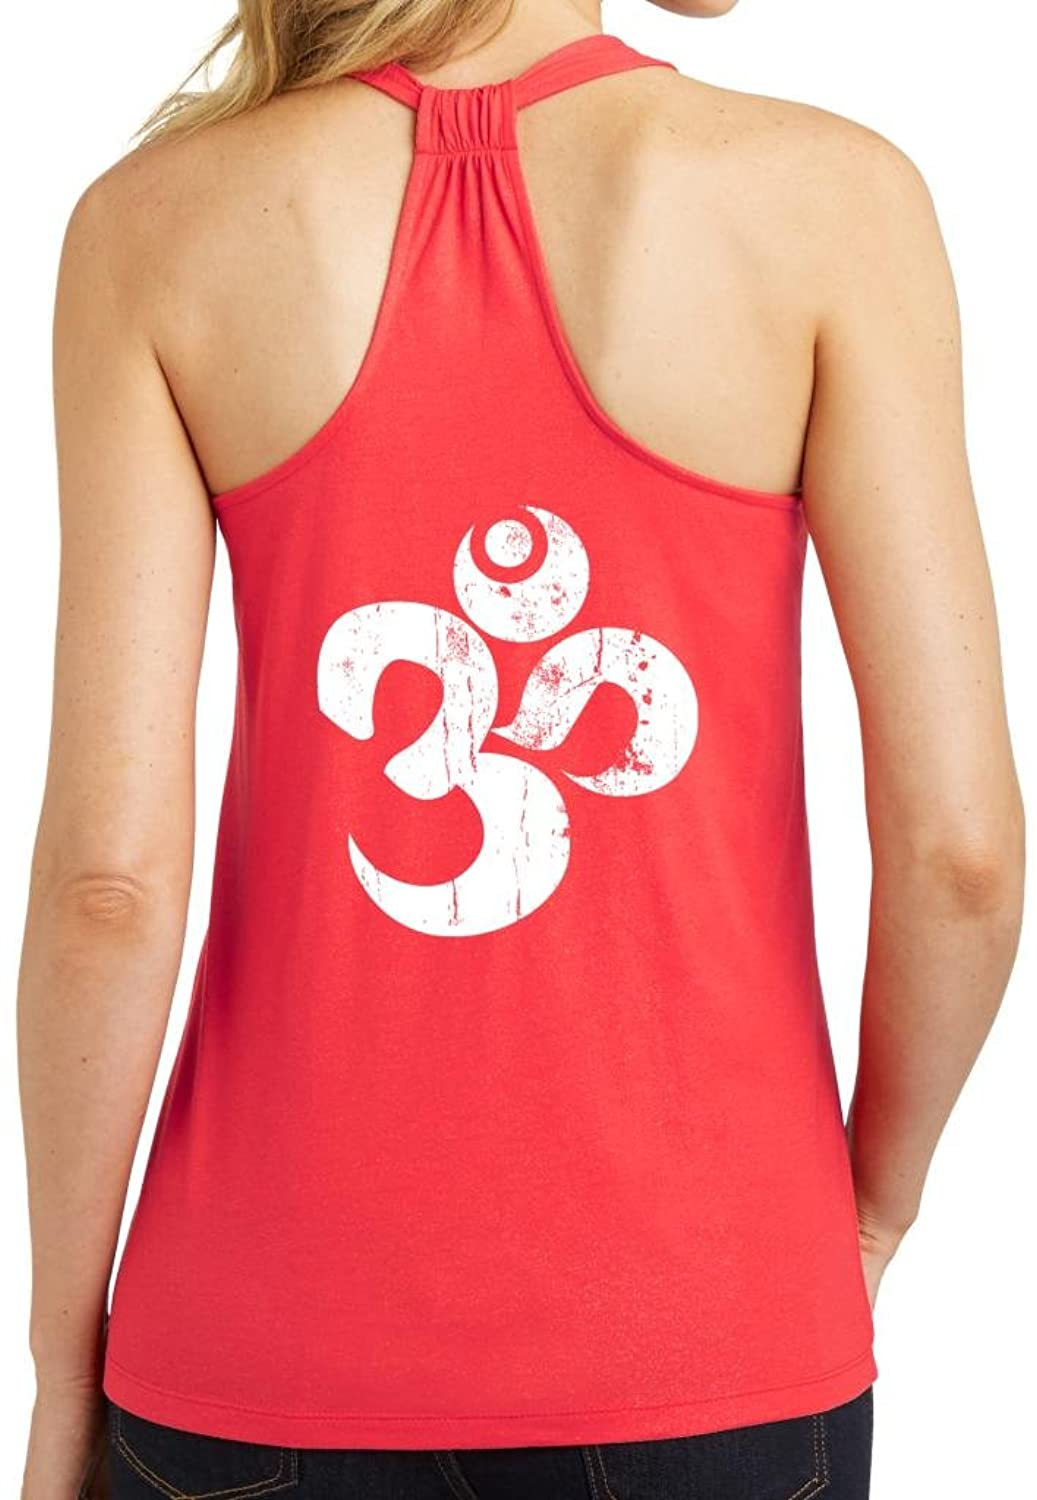 Yoga Clothing For You Ladies Distressed OM Tank Top